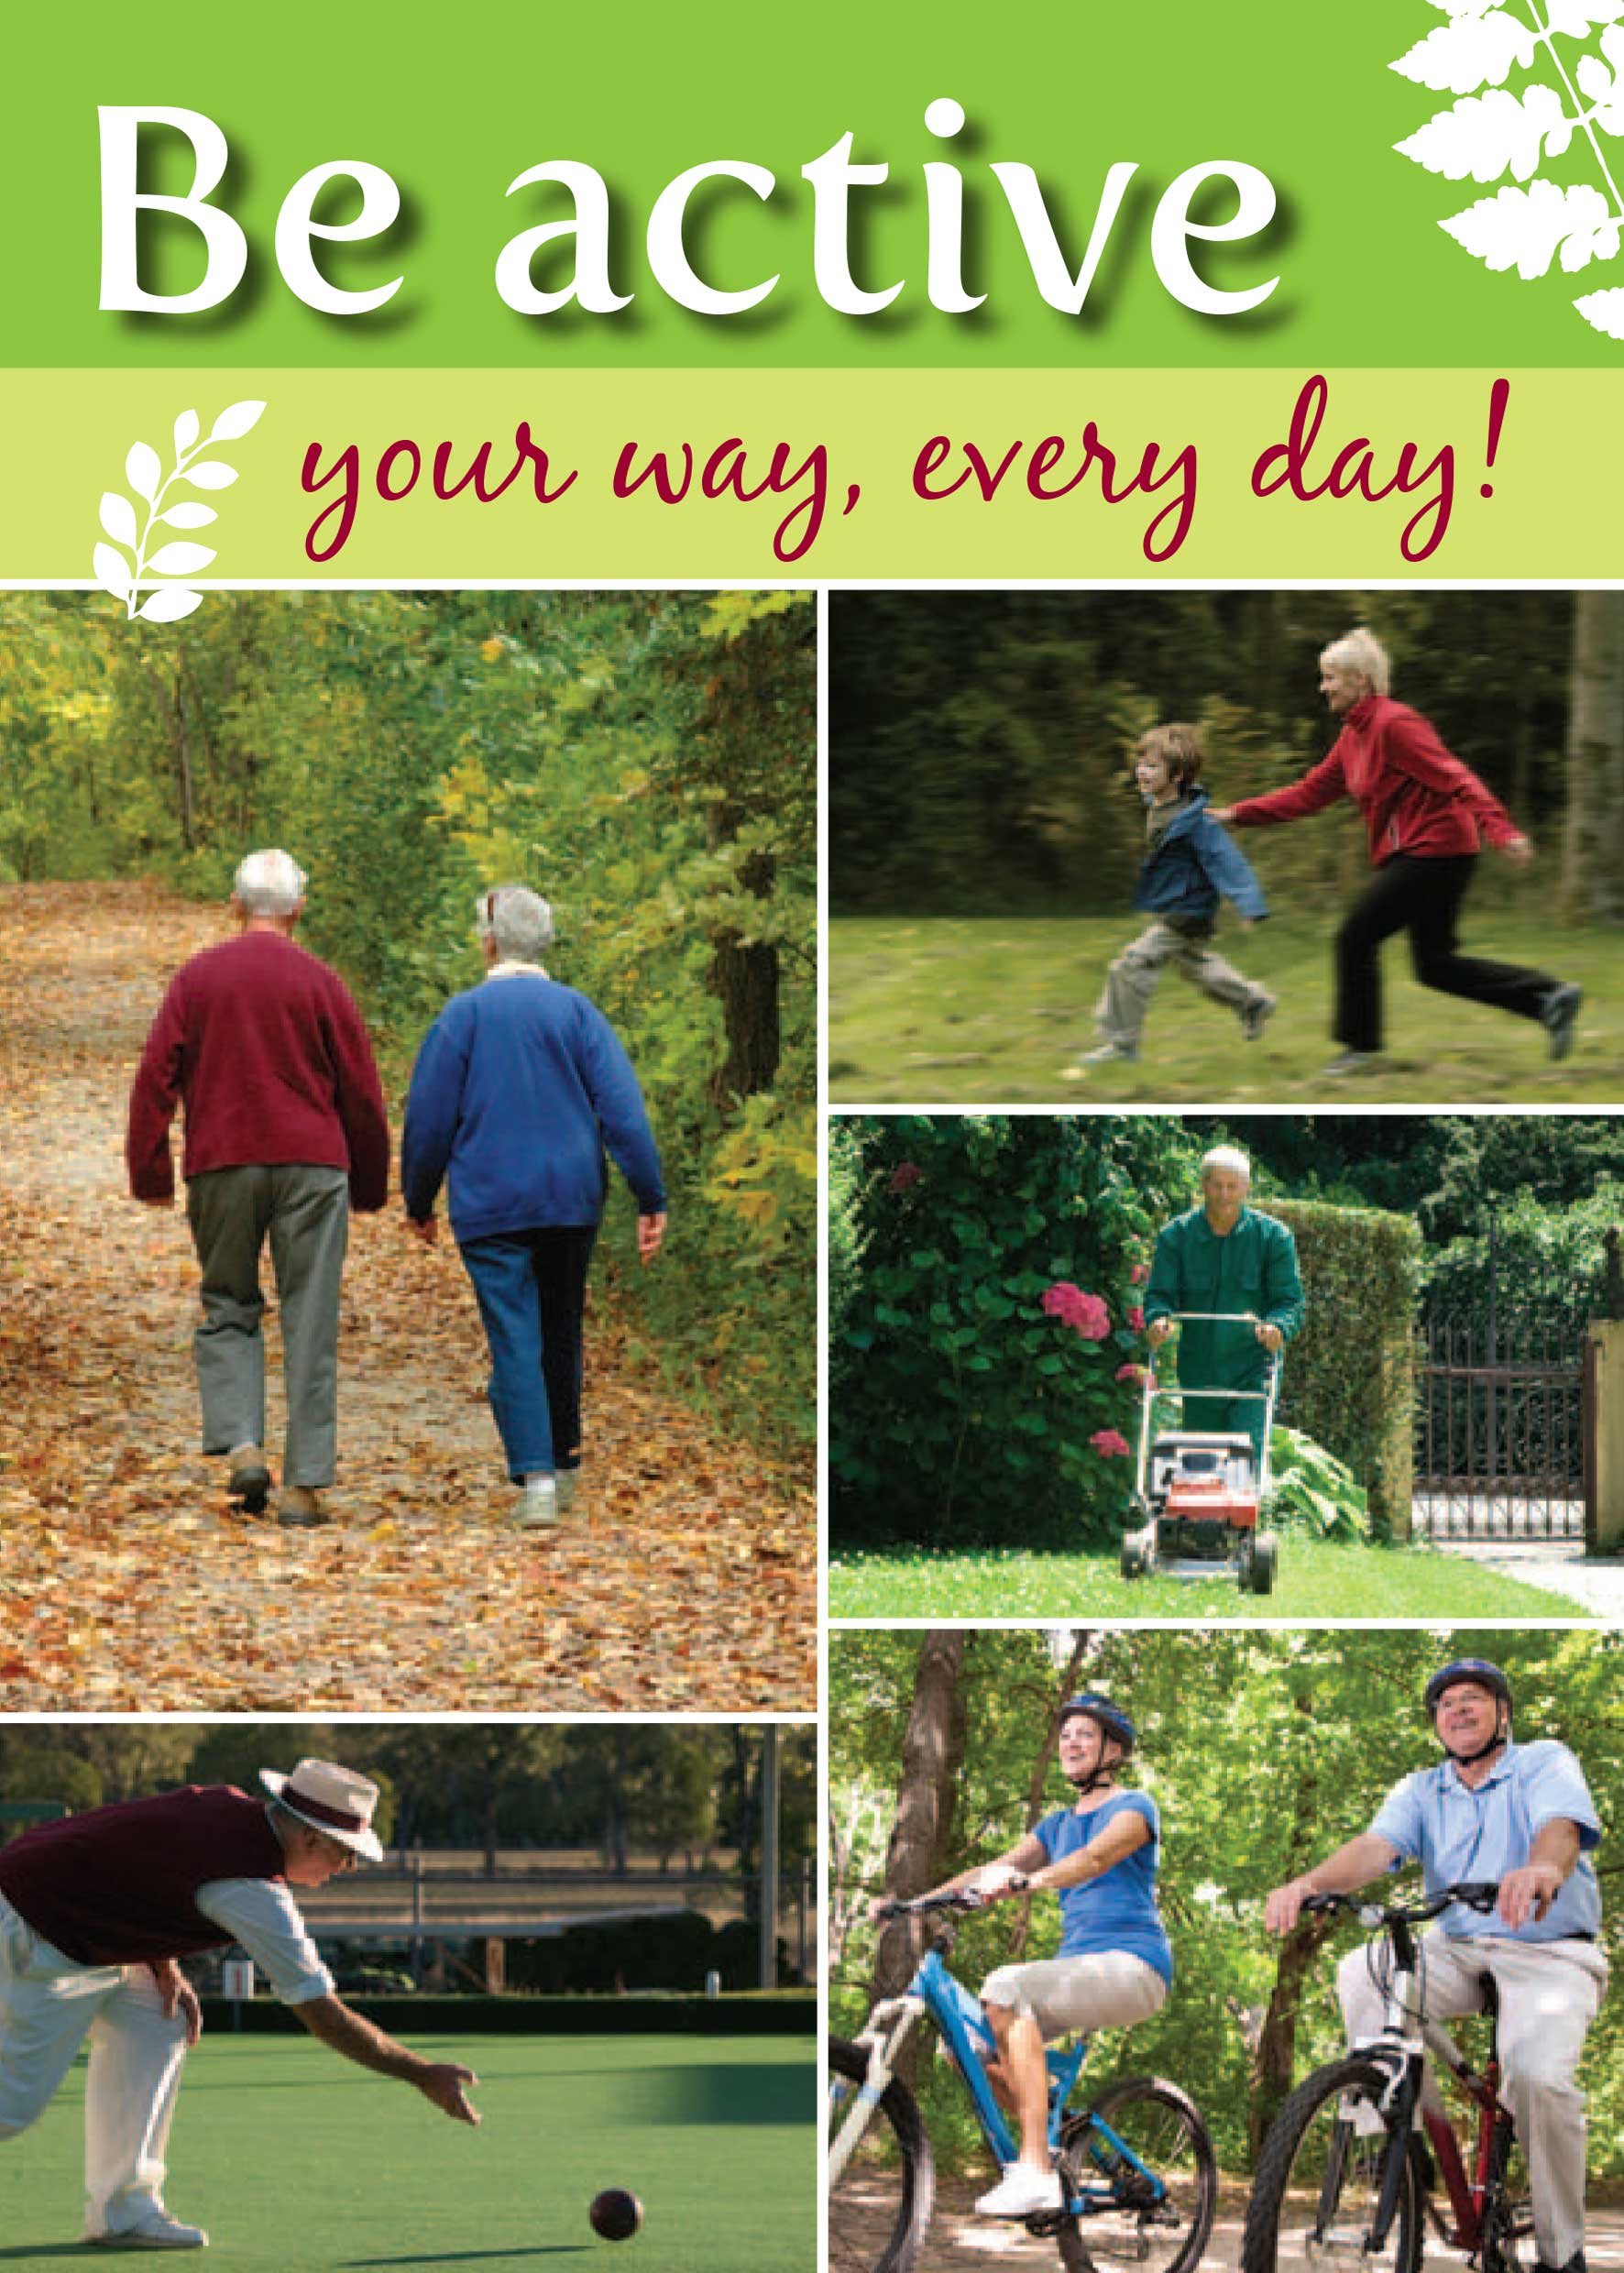 Be active your way, every day!